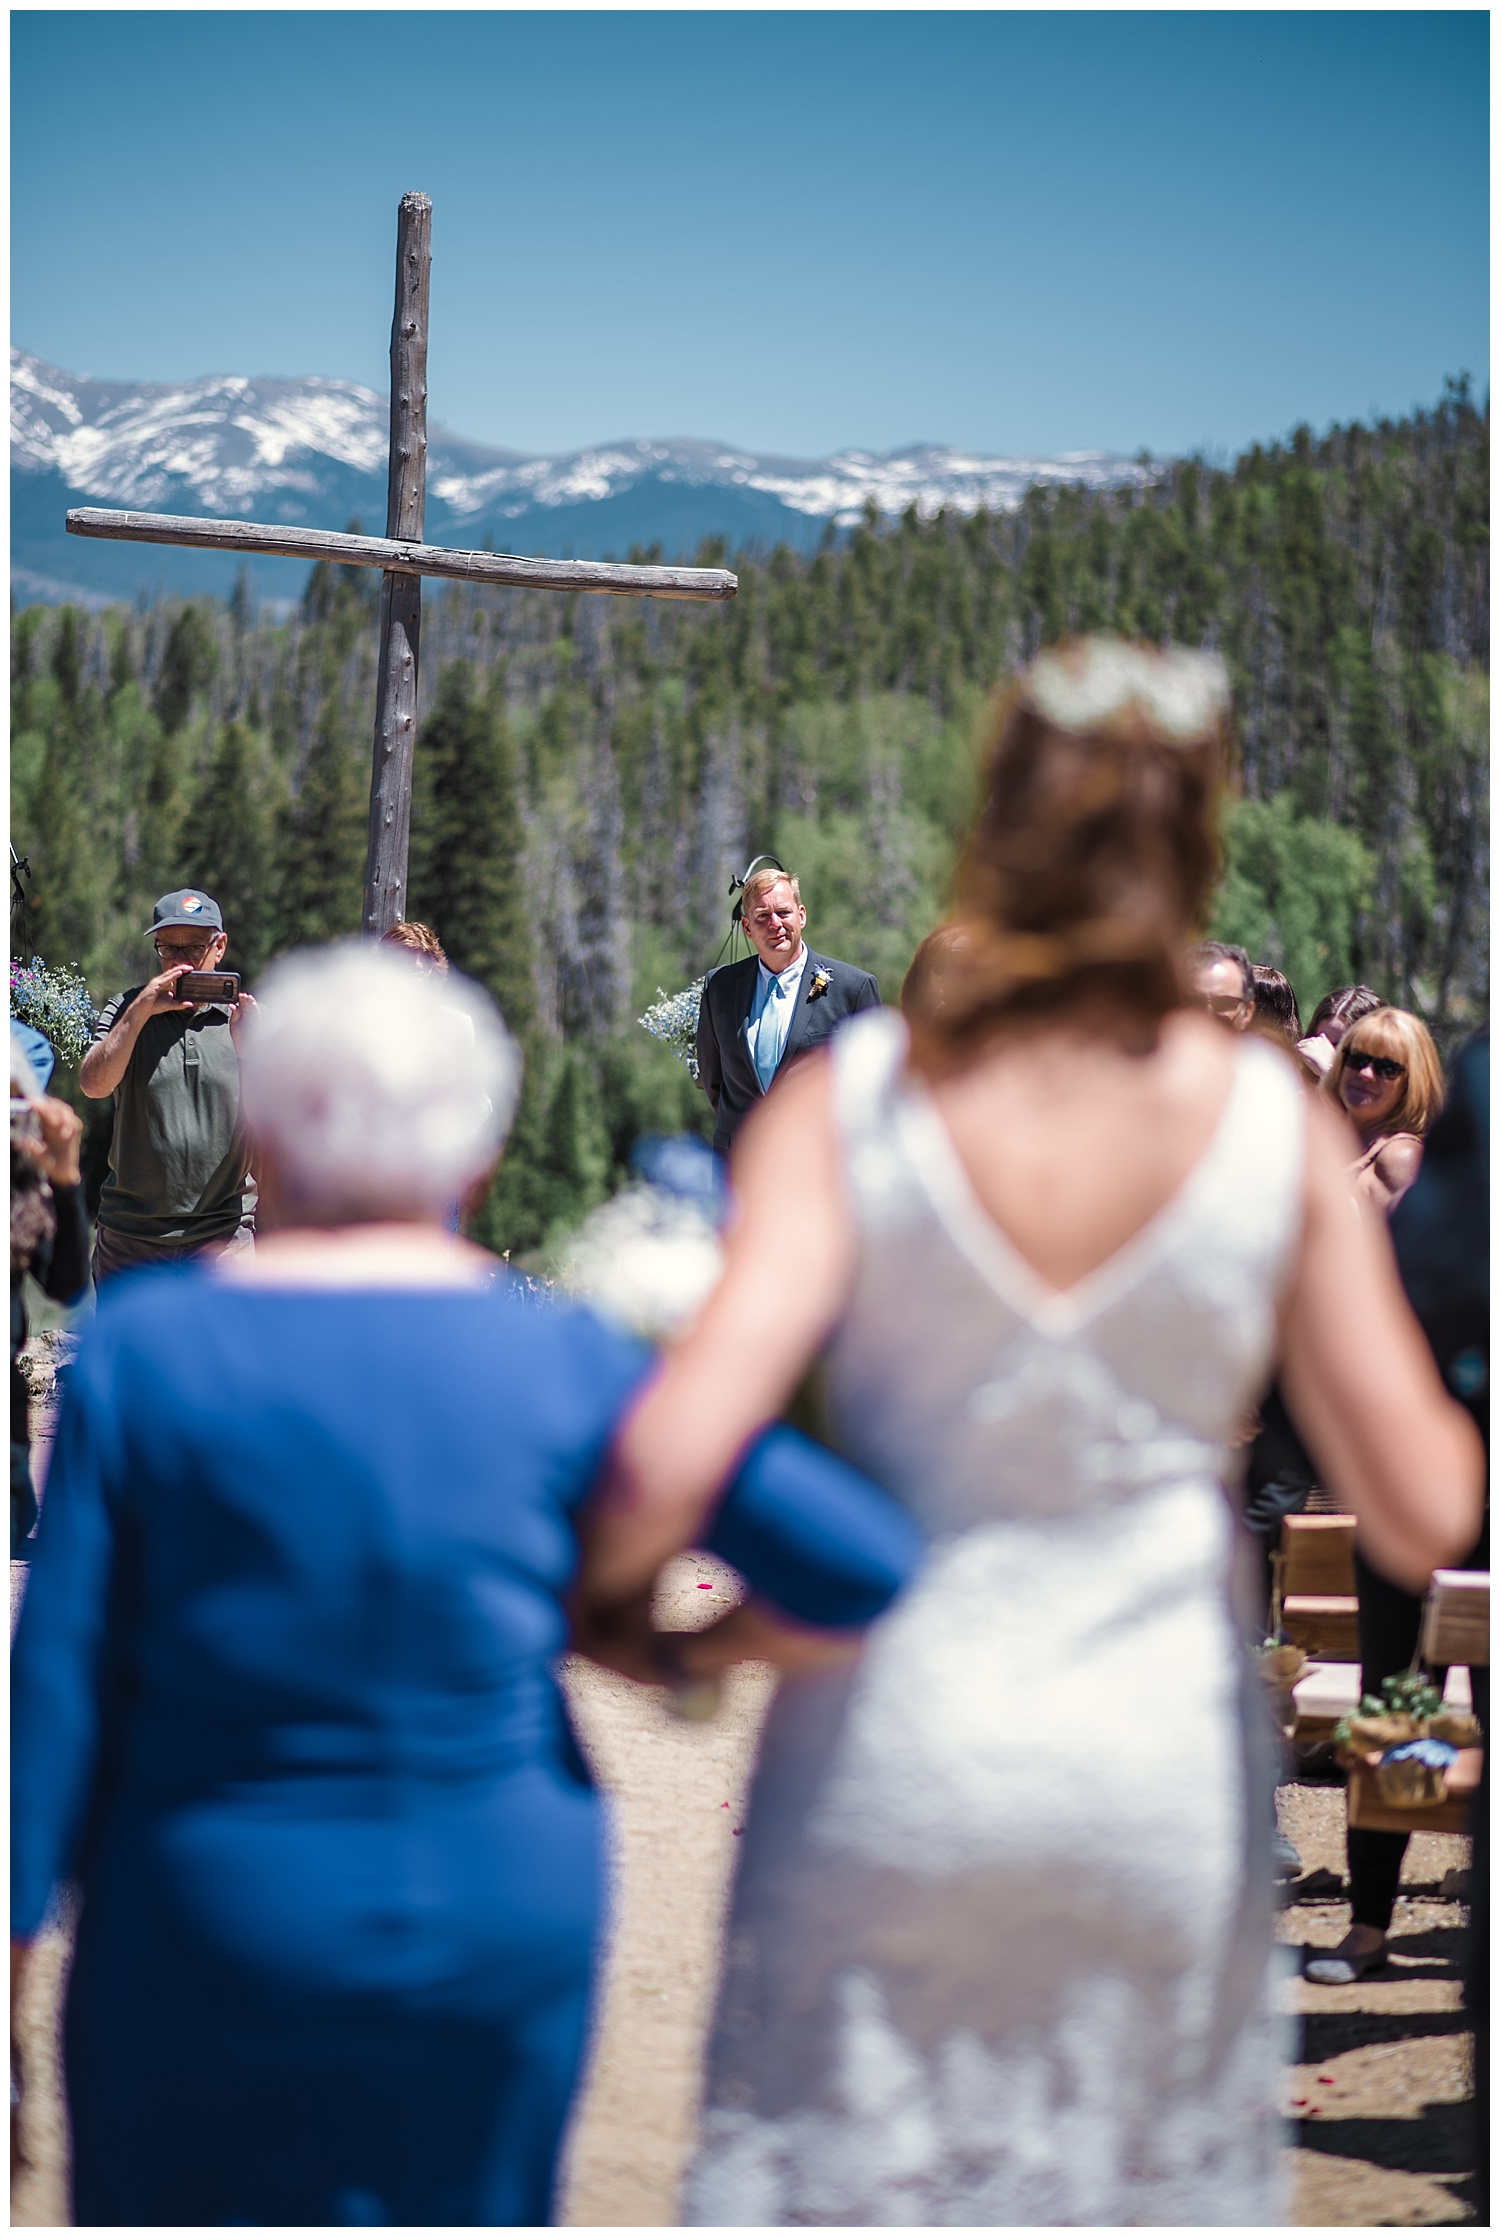 Blue Wedding, Blue and White Flowers, YMCA Snow Mountain Wedding, Rocky Mountain Wedding Photographer, Colorado Wedding Photographer, Colorado Elopement Photographer, Denver Wedding Photographer